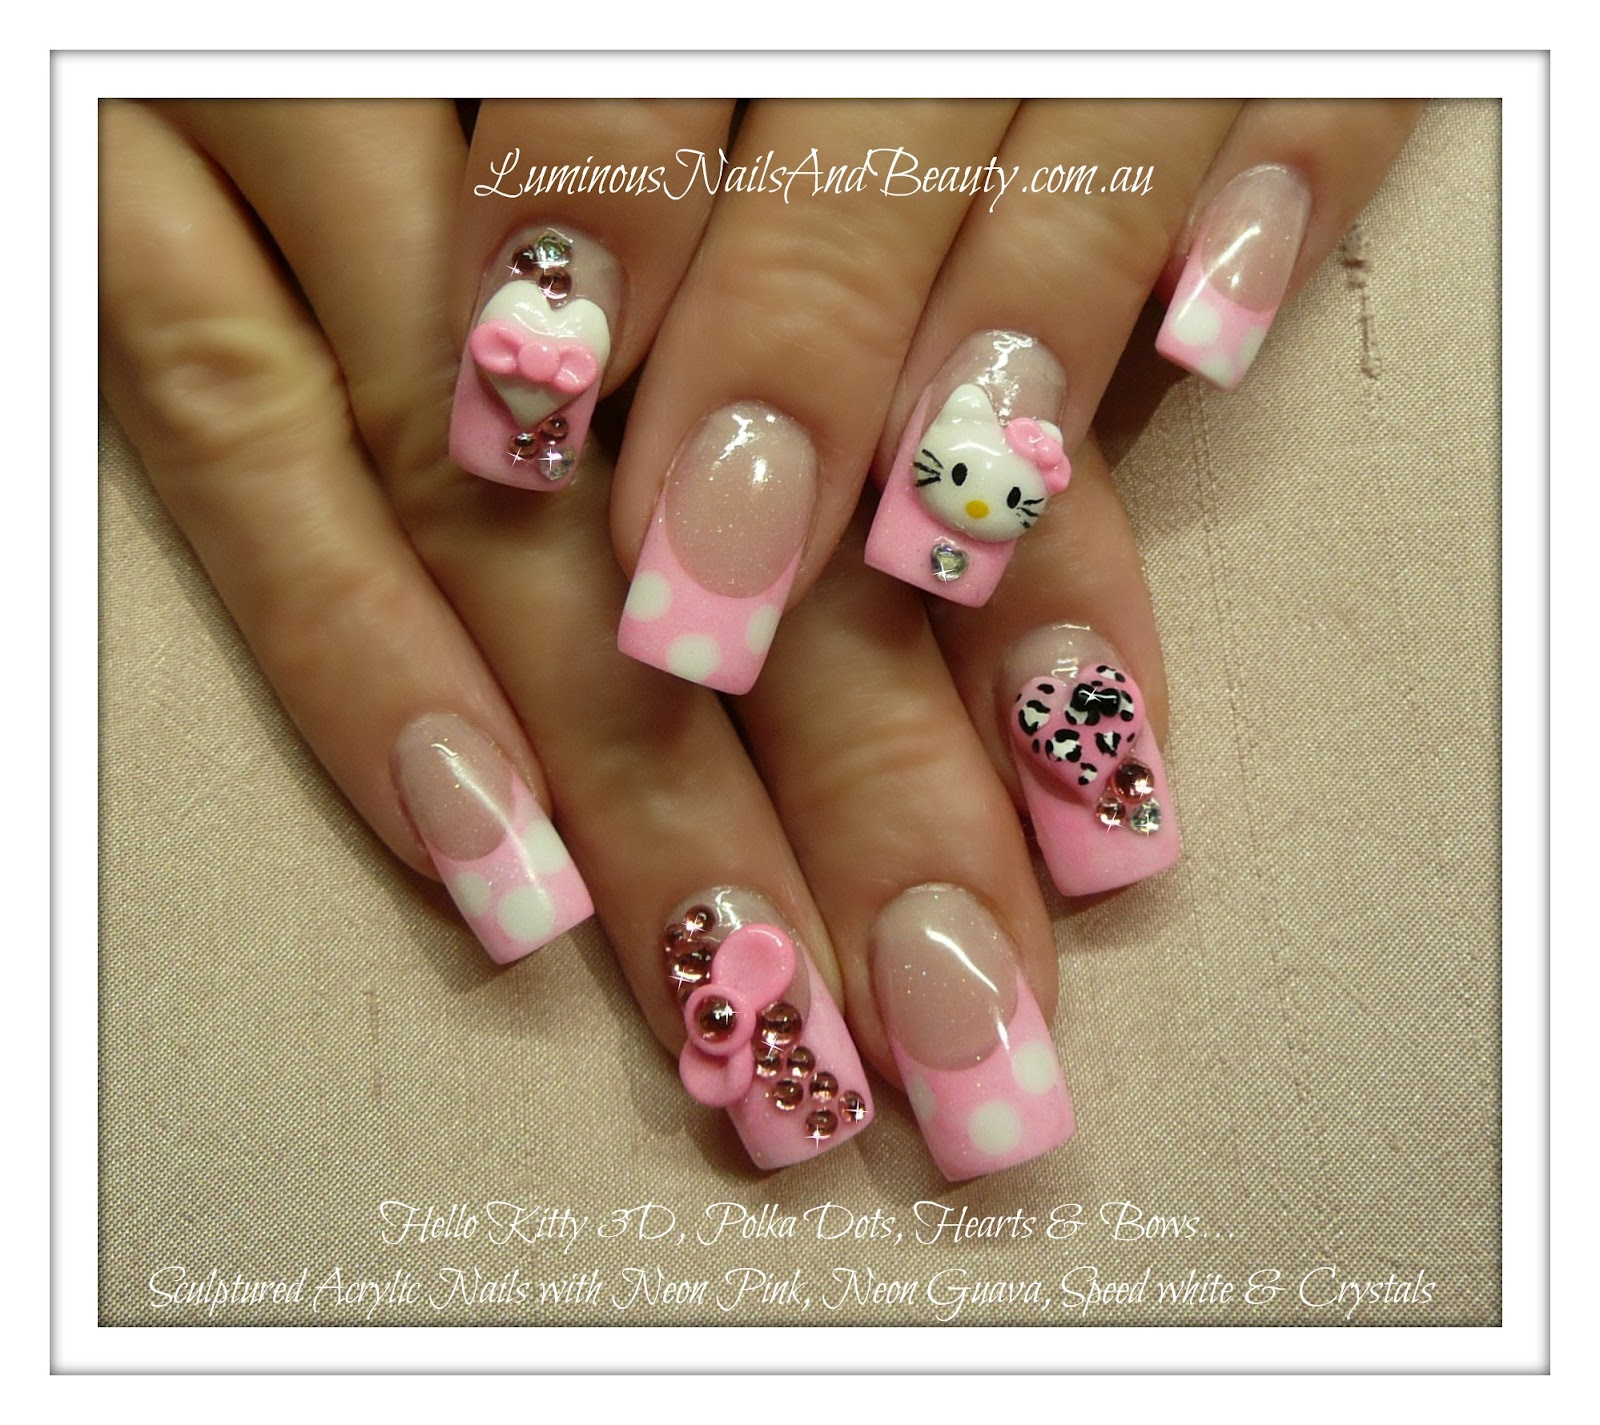 The Appealing Leopard print fake nail designs Photo